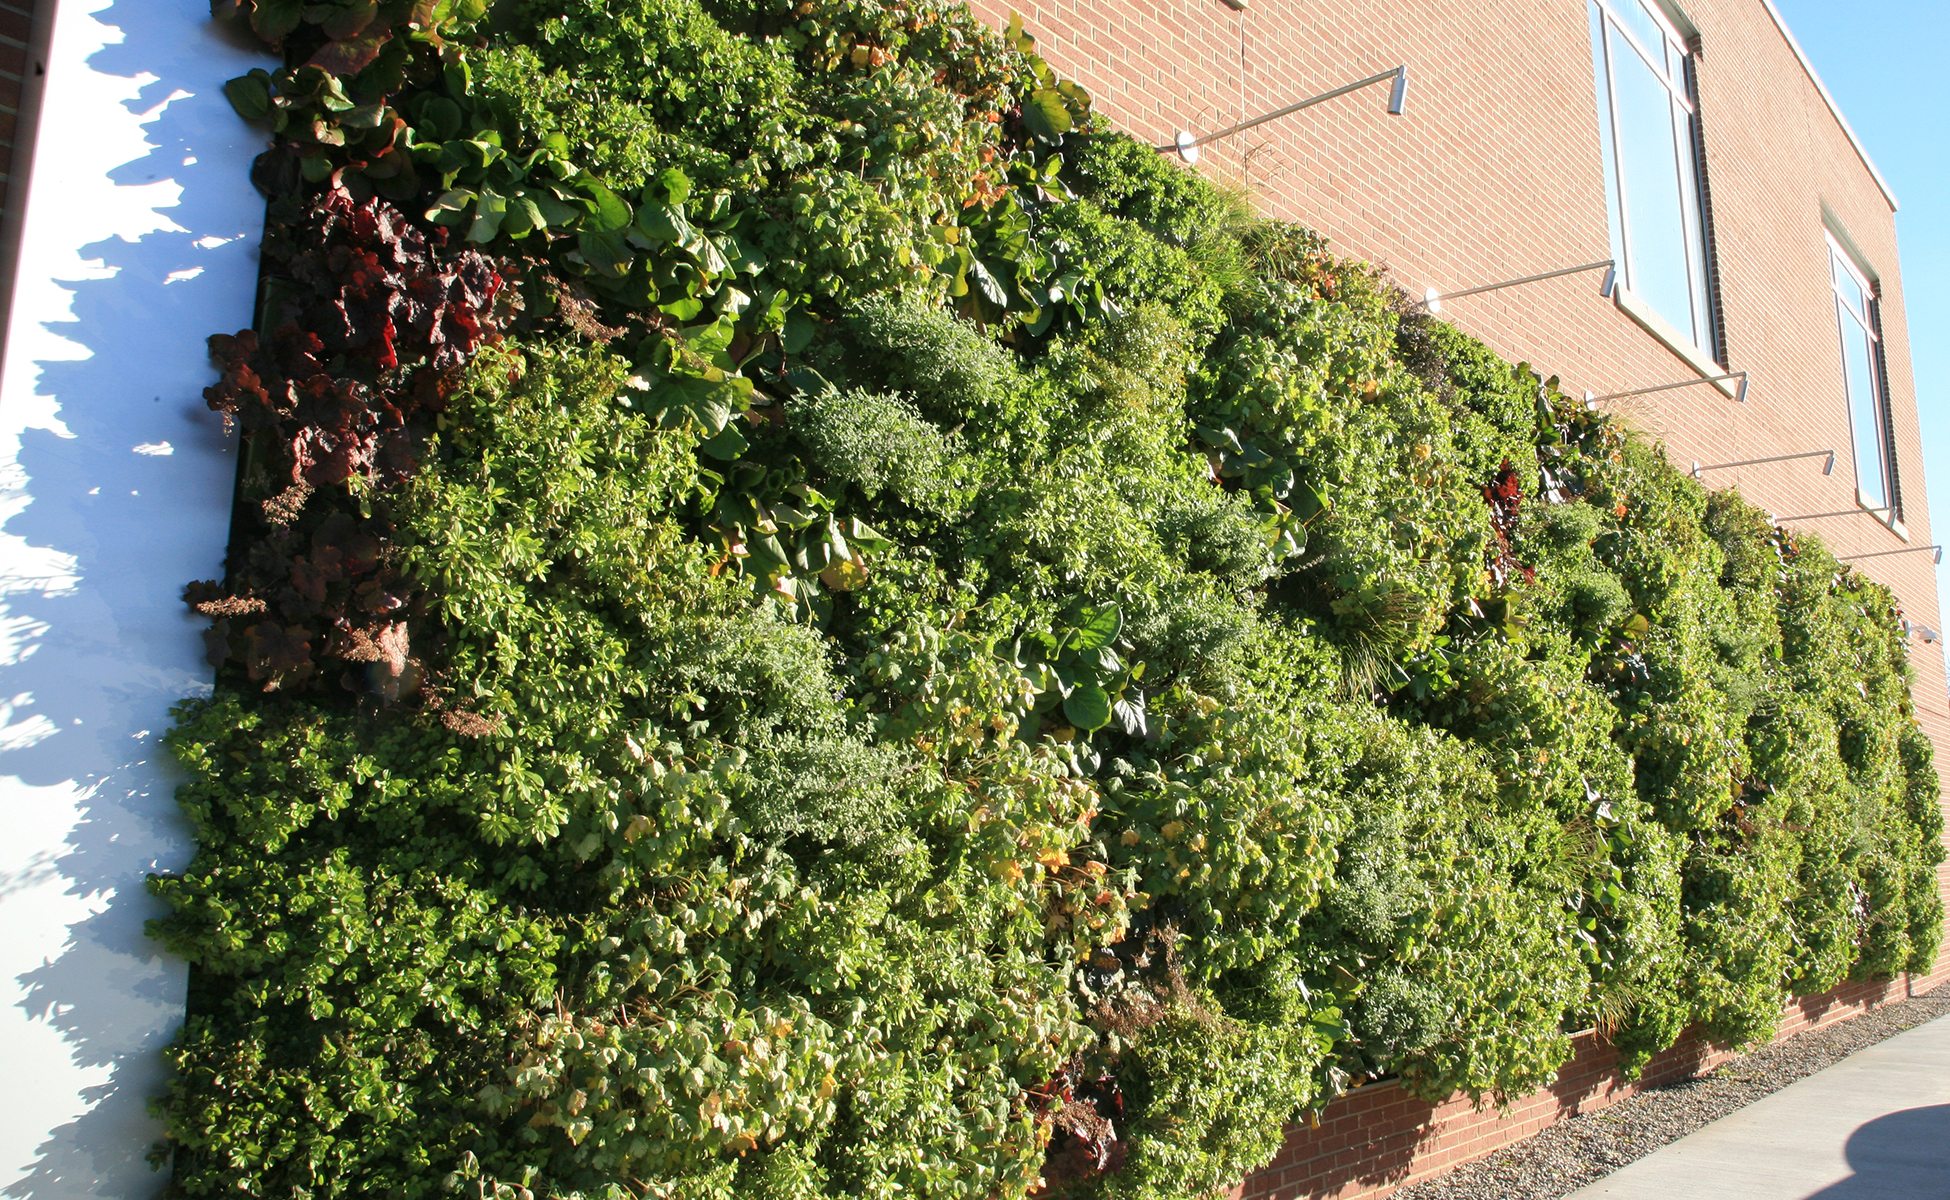 Green wall planted with cold-winter hardy perennials, photographed in November